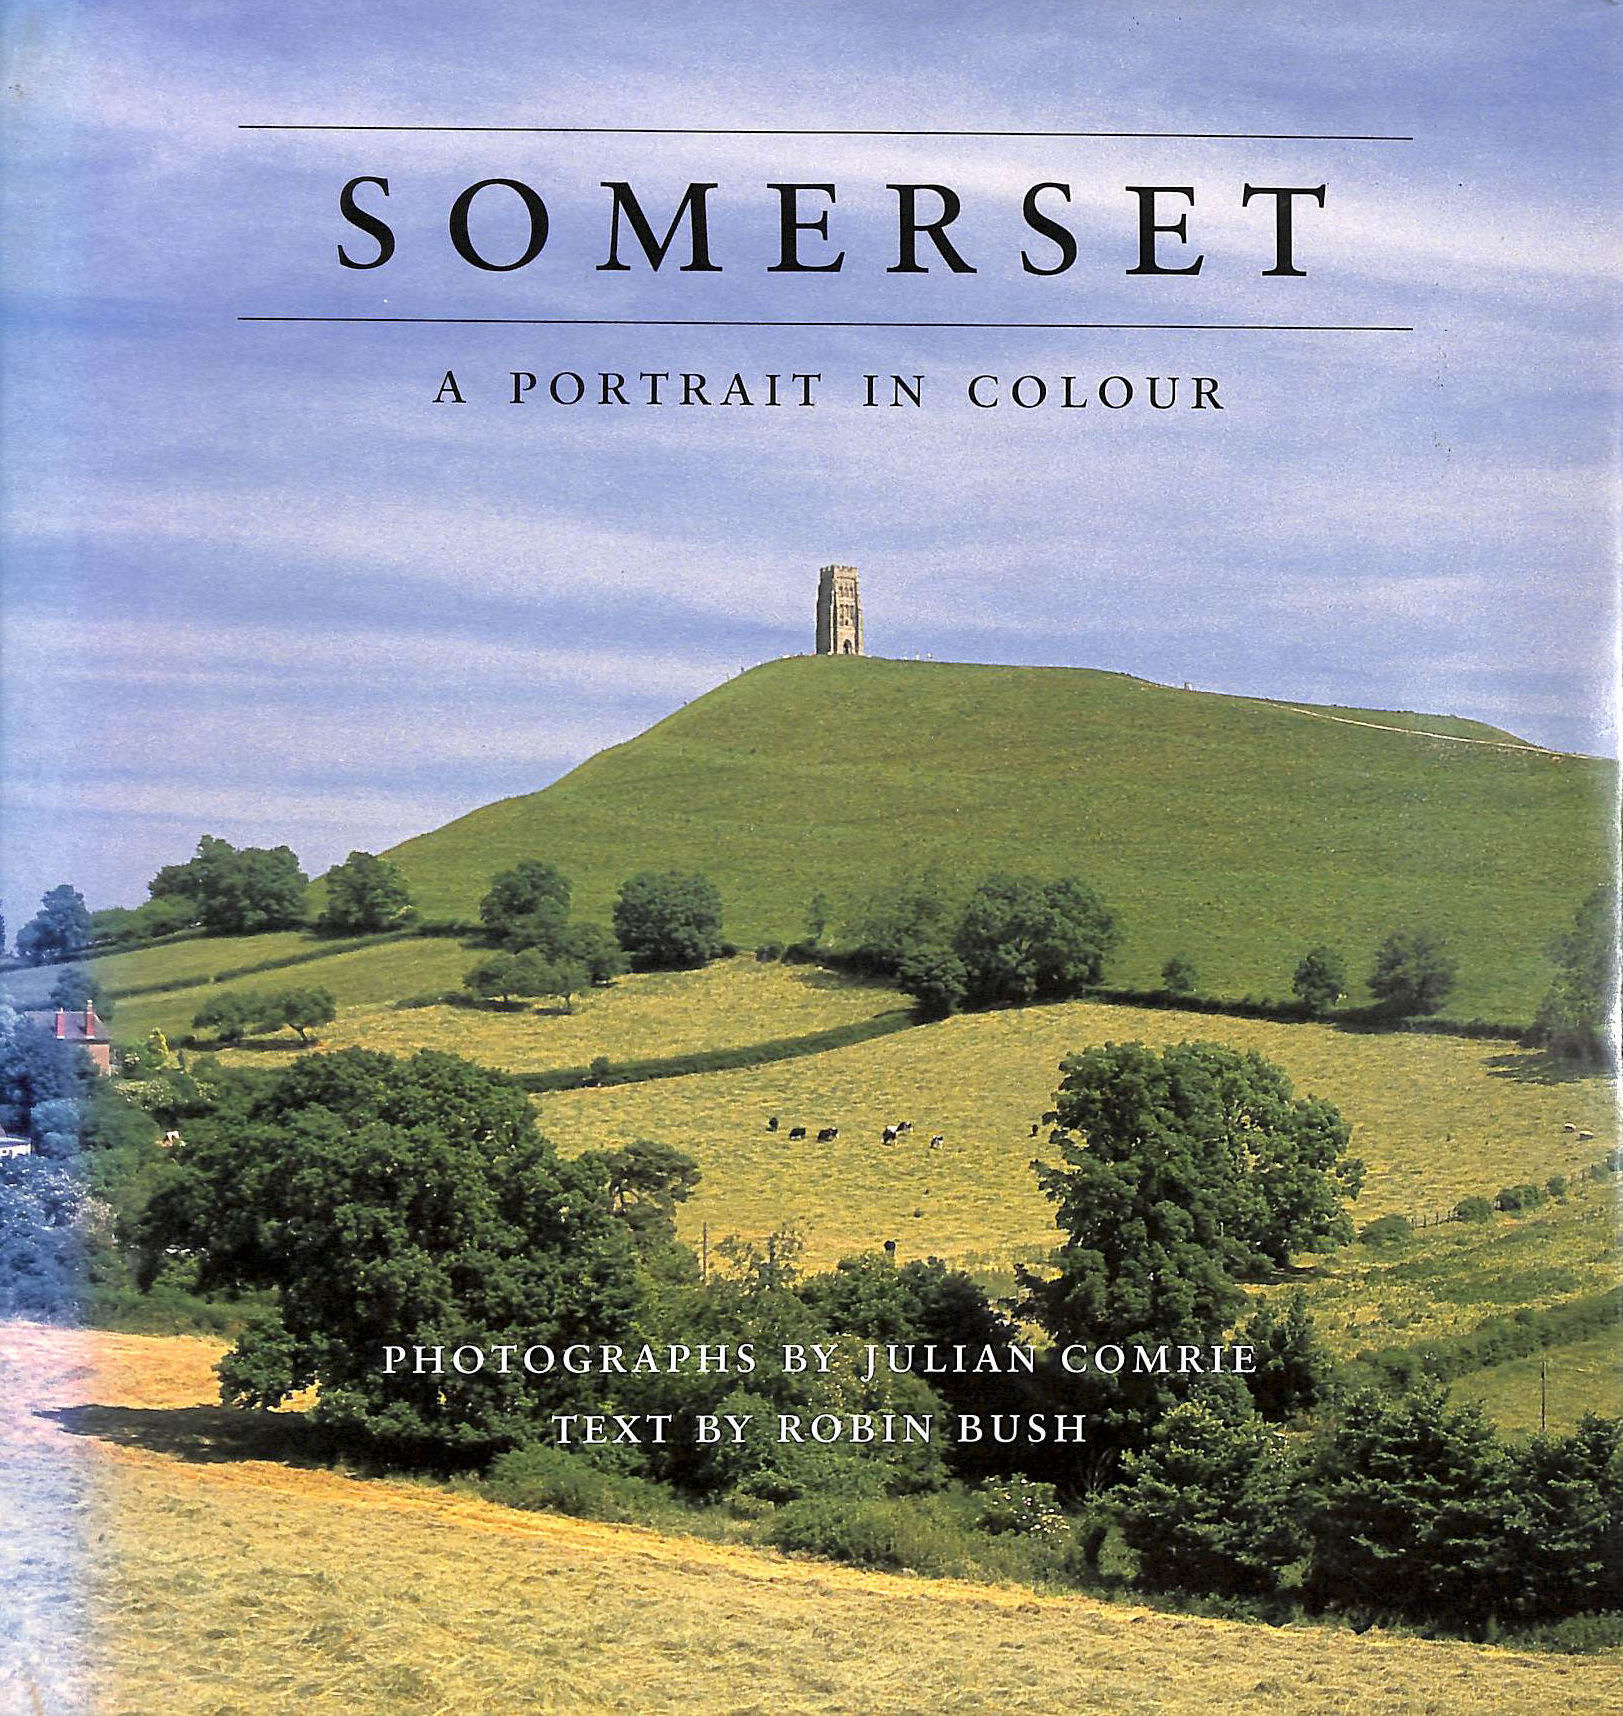 COMRIE, JULIAN; BUSH, ROBIN - Somerset: A Portrait in Colour